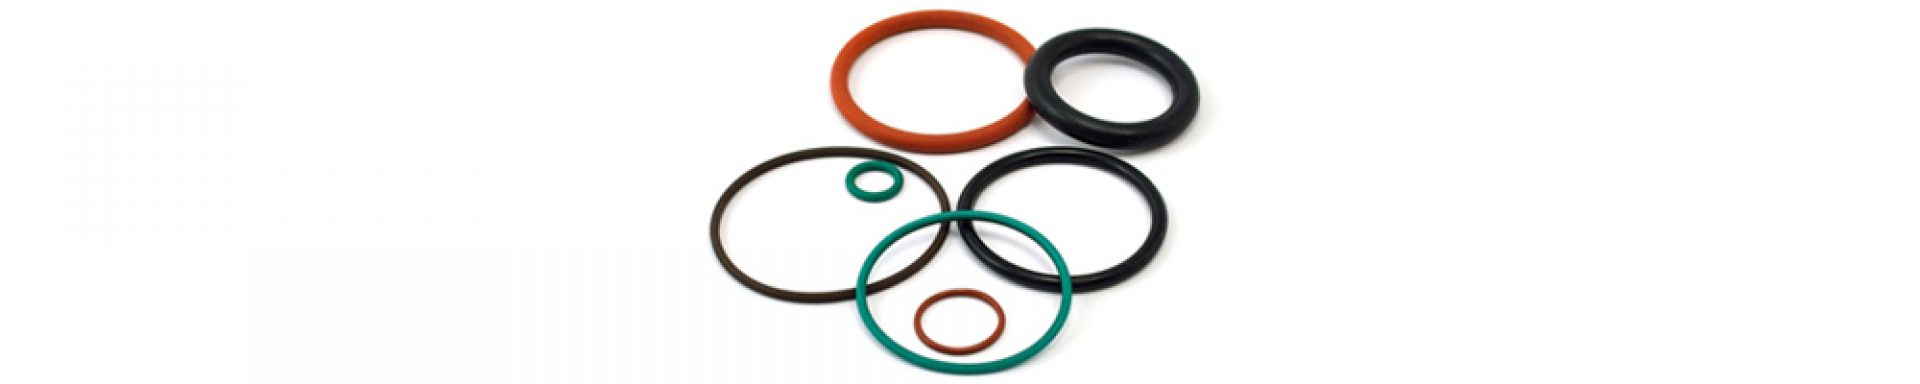 Metric & BS Standard O-Rings